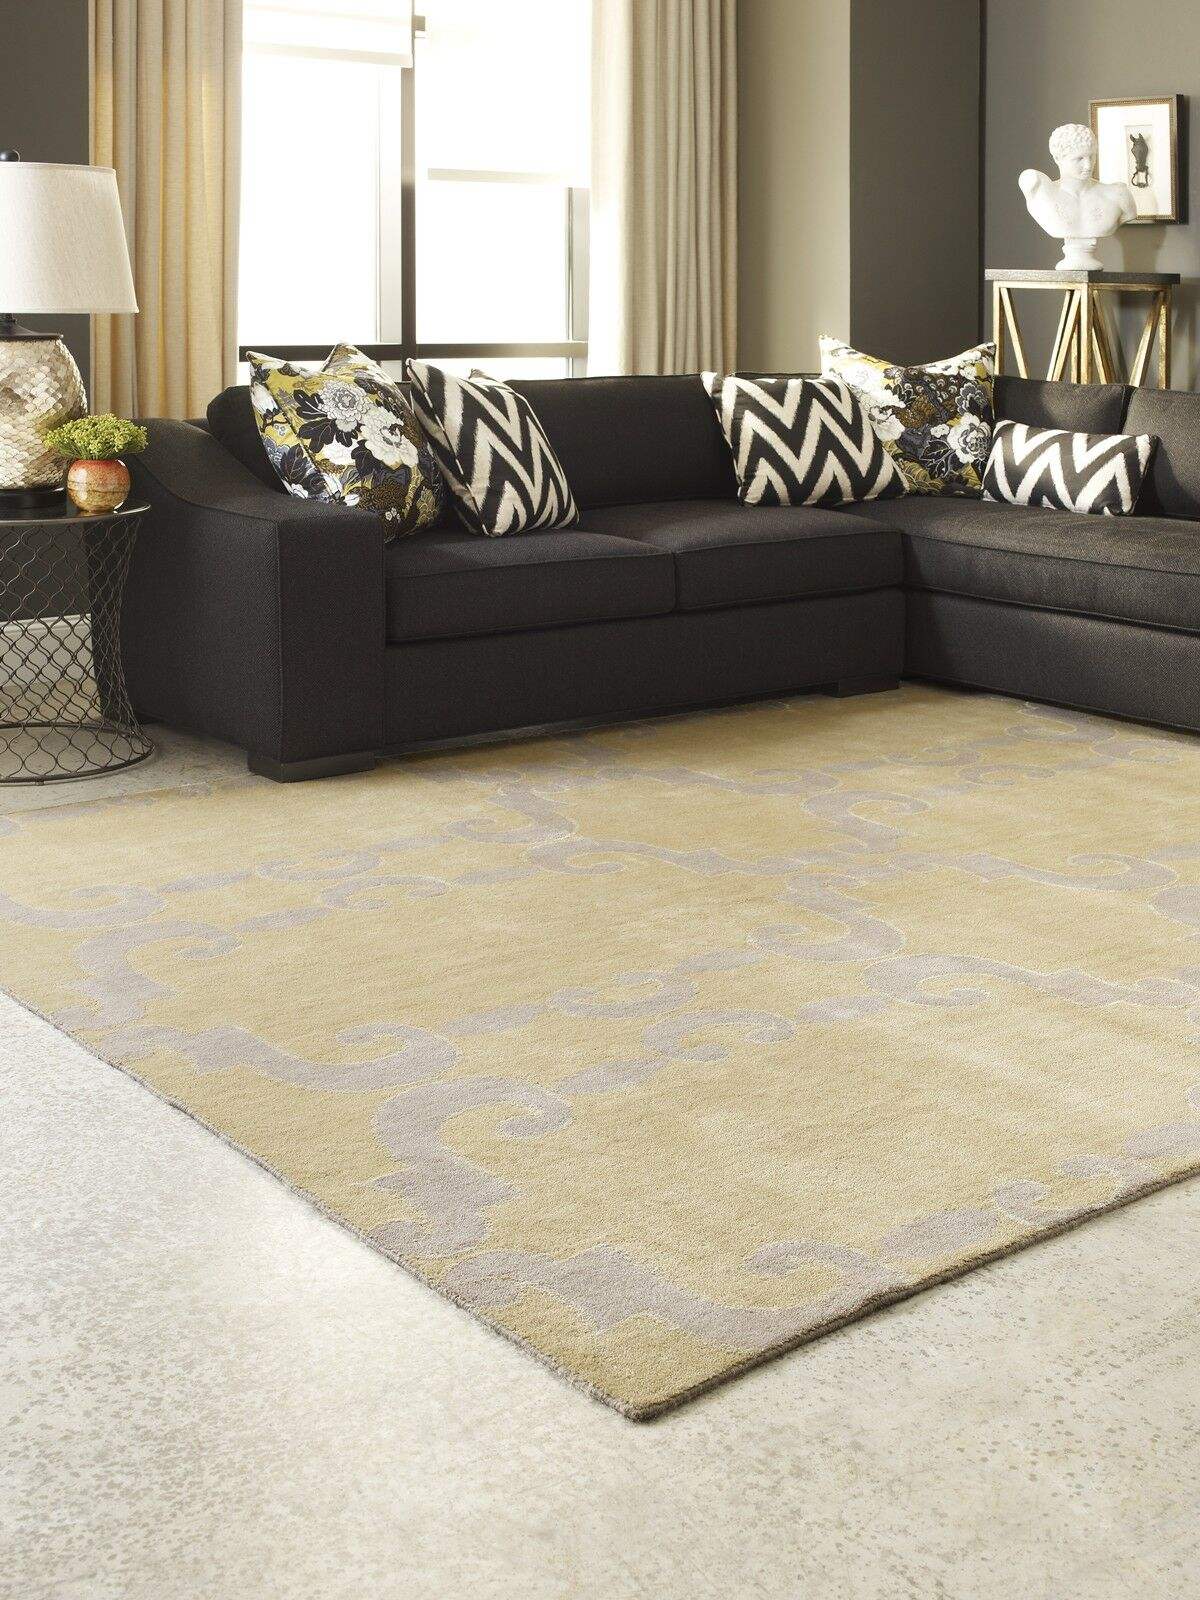 Gotsch Hand Knotted Wool Gold Area Rug Rug Size: Rectangle 2' x 3'